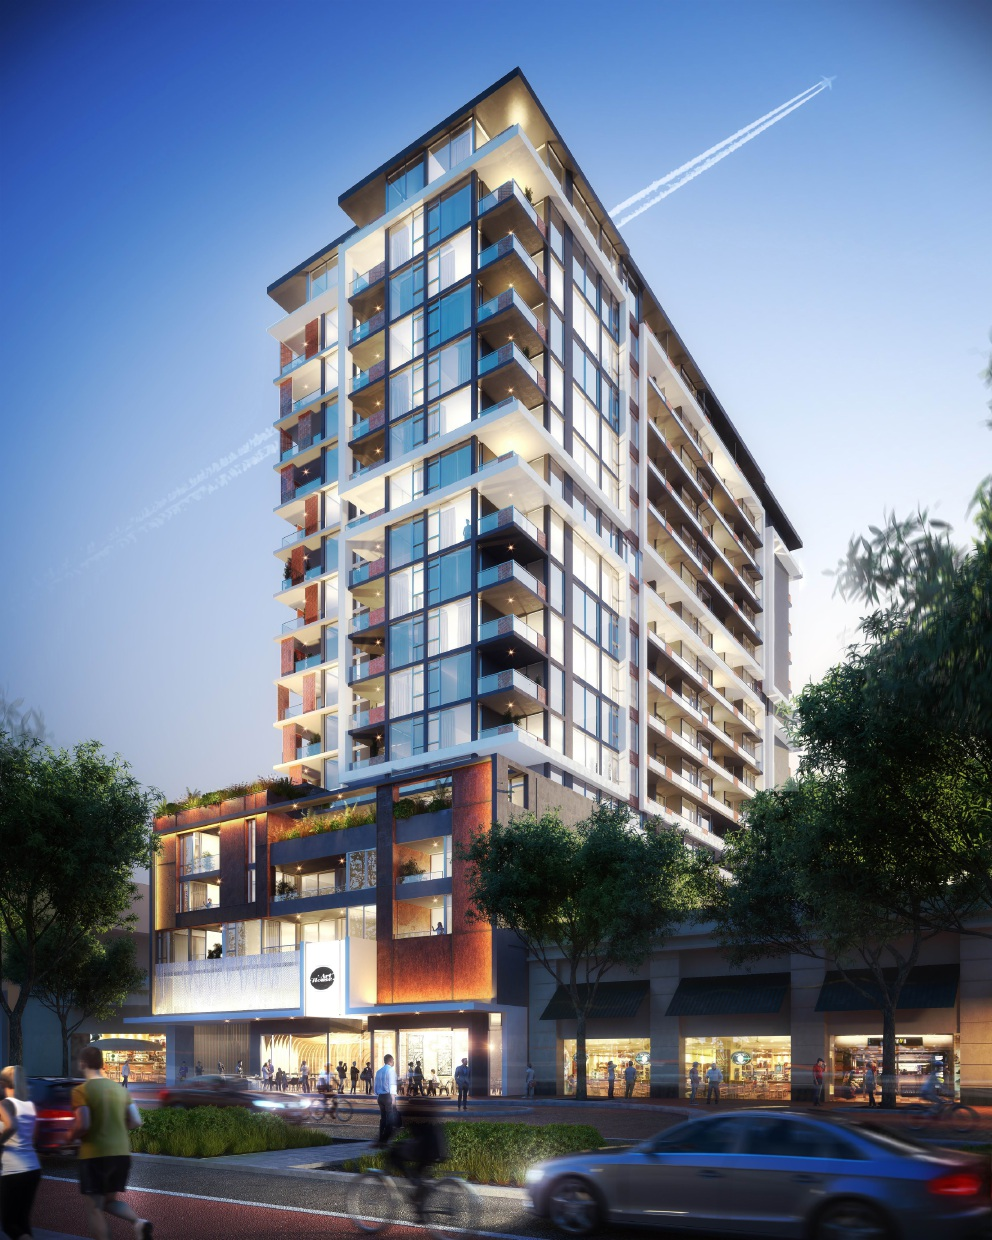 17 South Apartments: Joondalup City Centre's Tallest High Rise Underway In